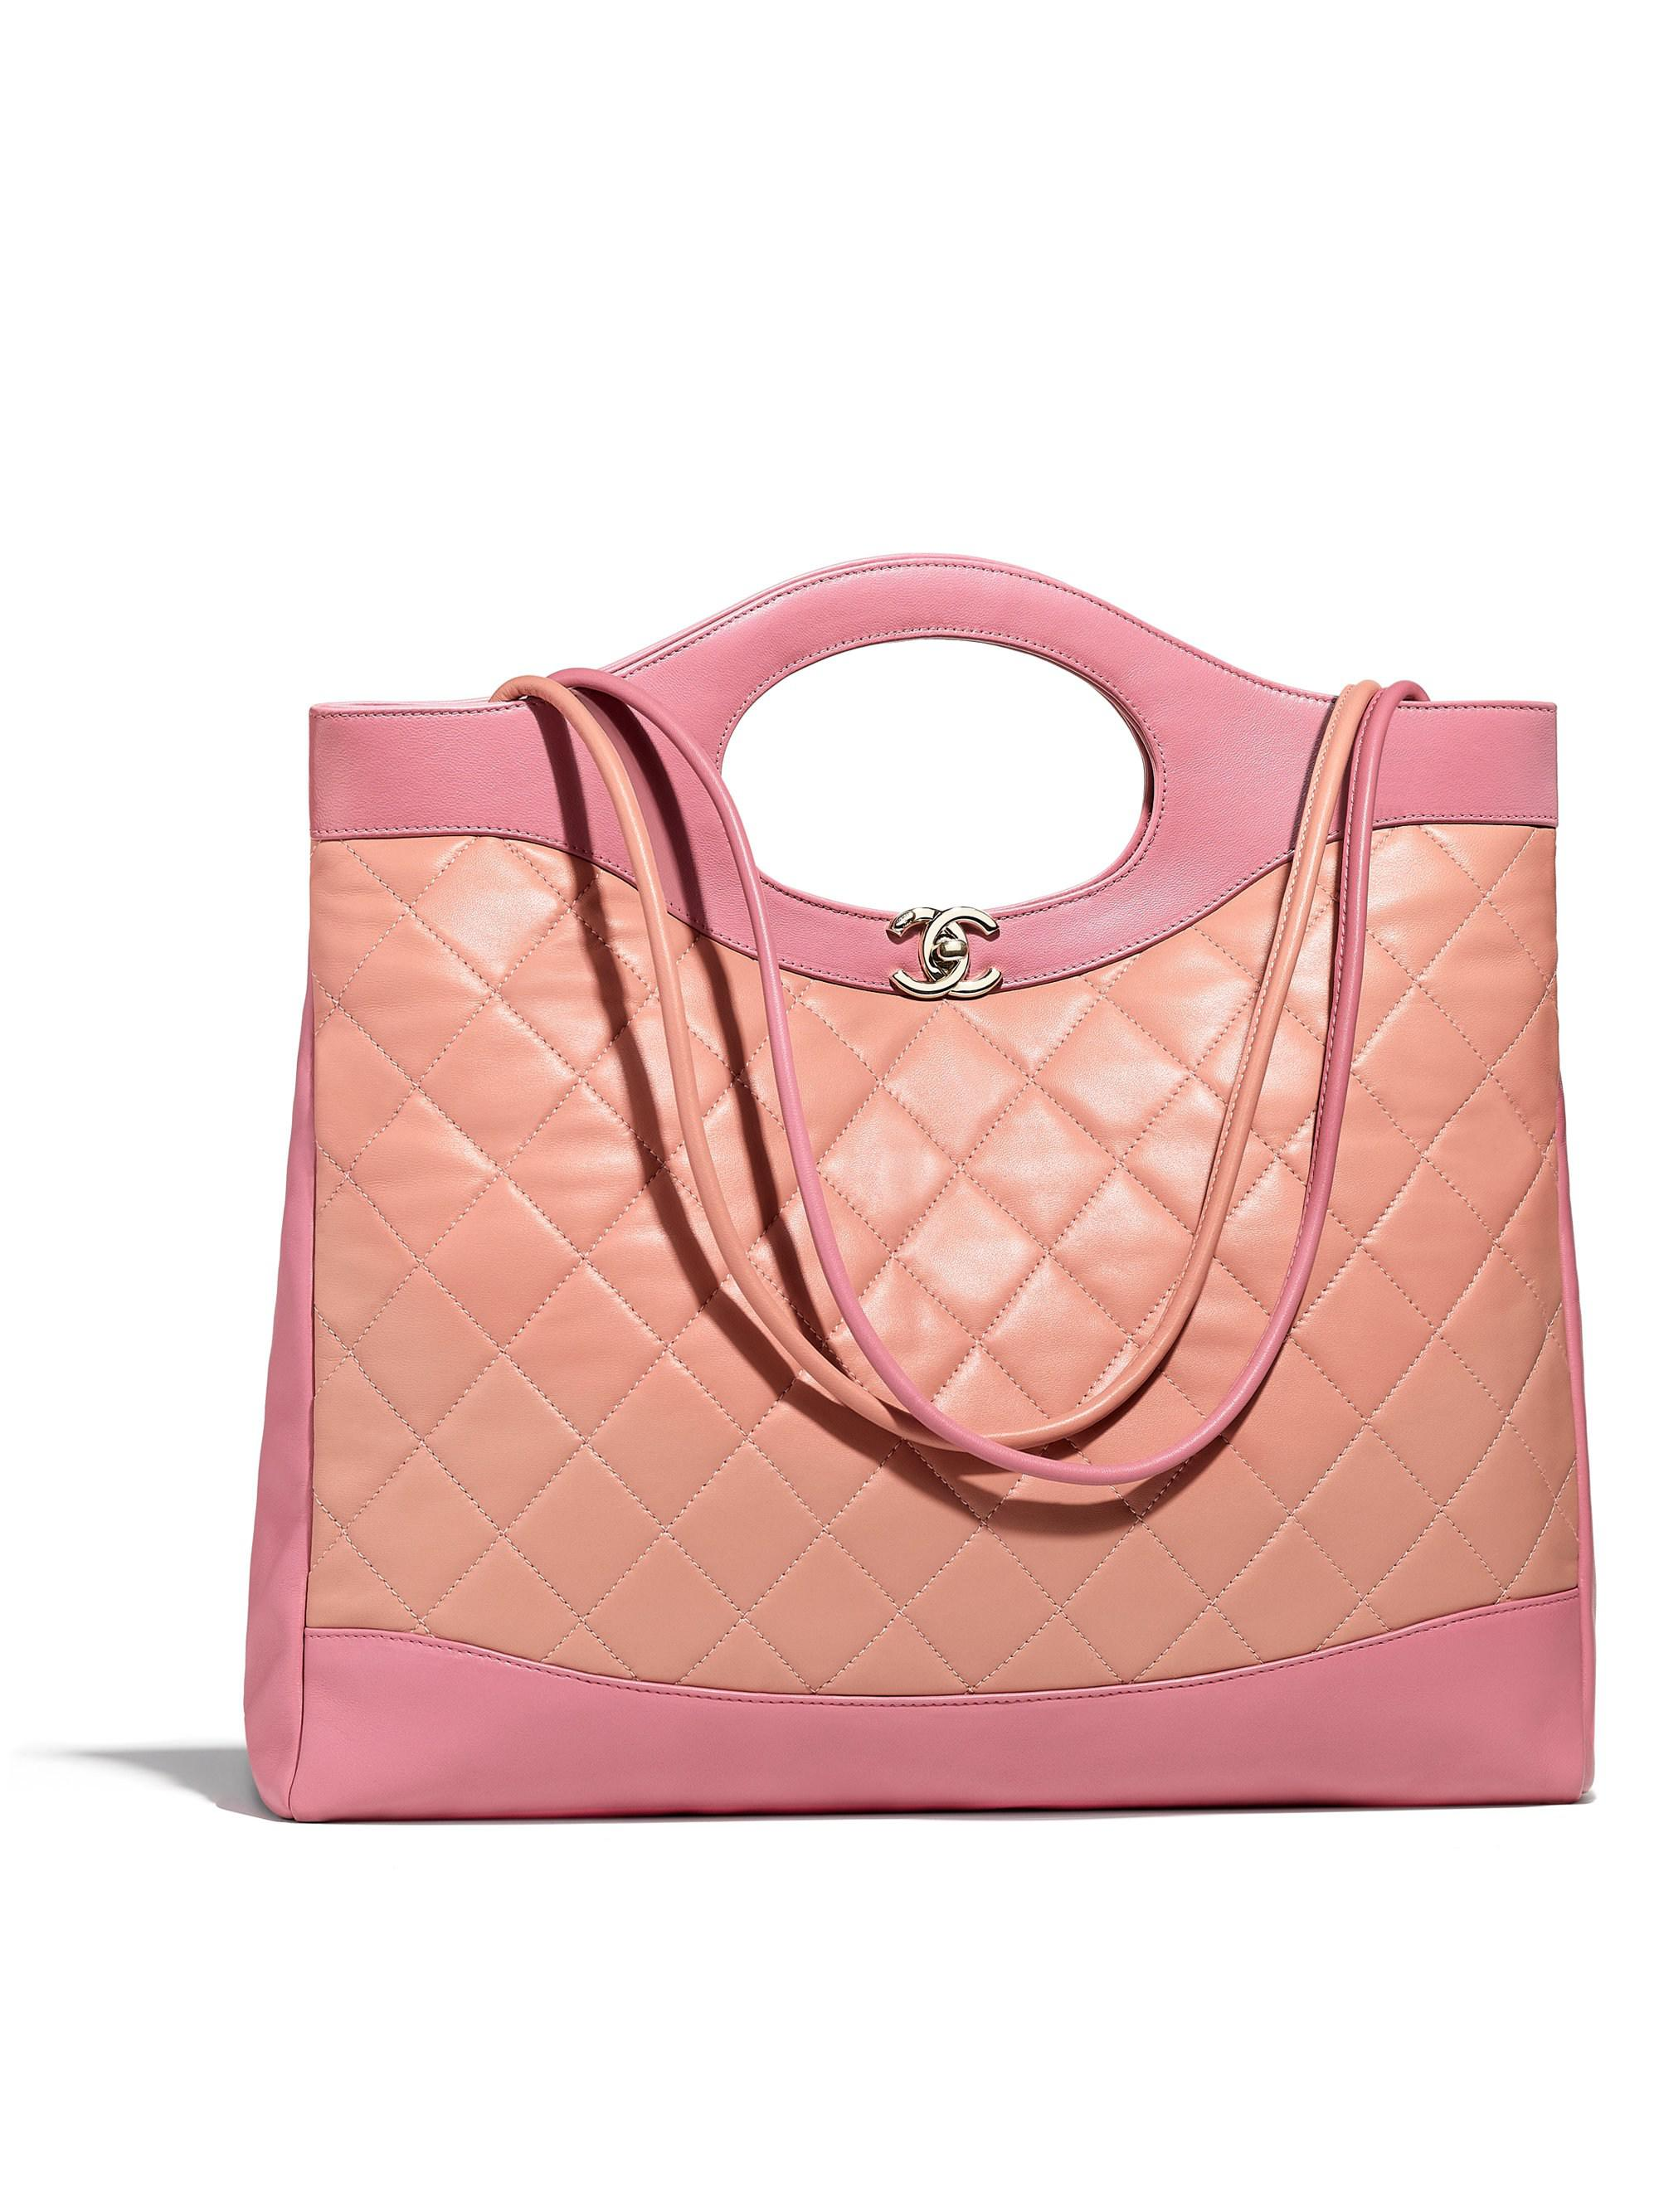 acff7f5c5eec Lyst - Chanel 31 Large Shopping Bag in Pink